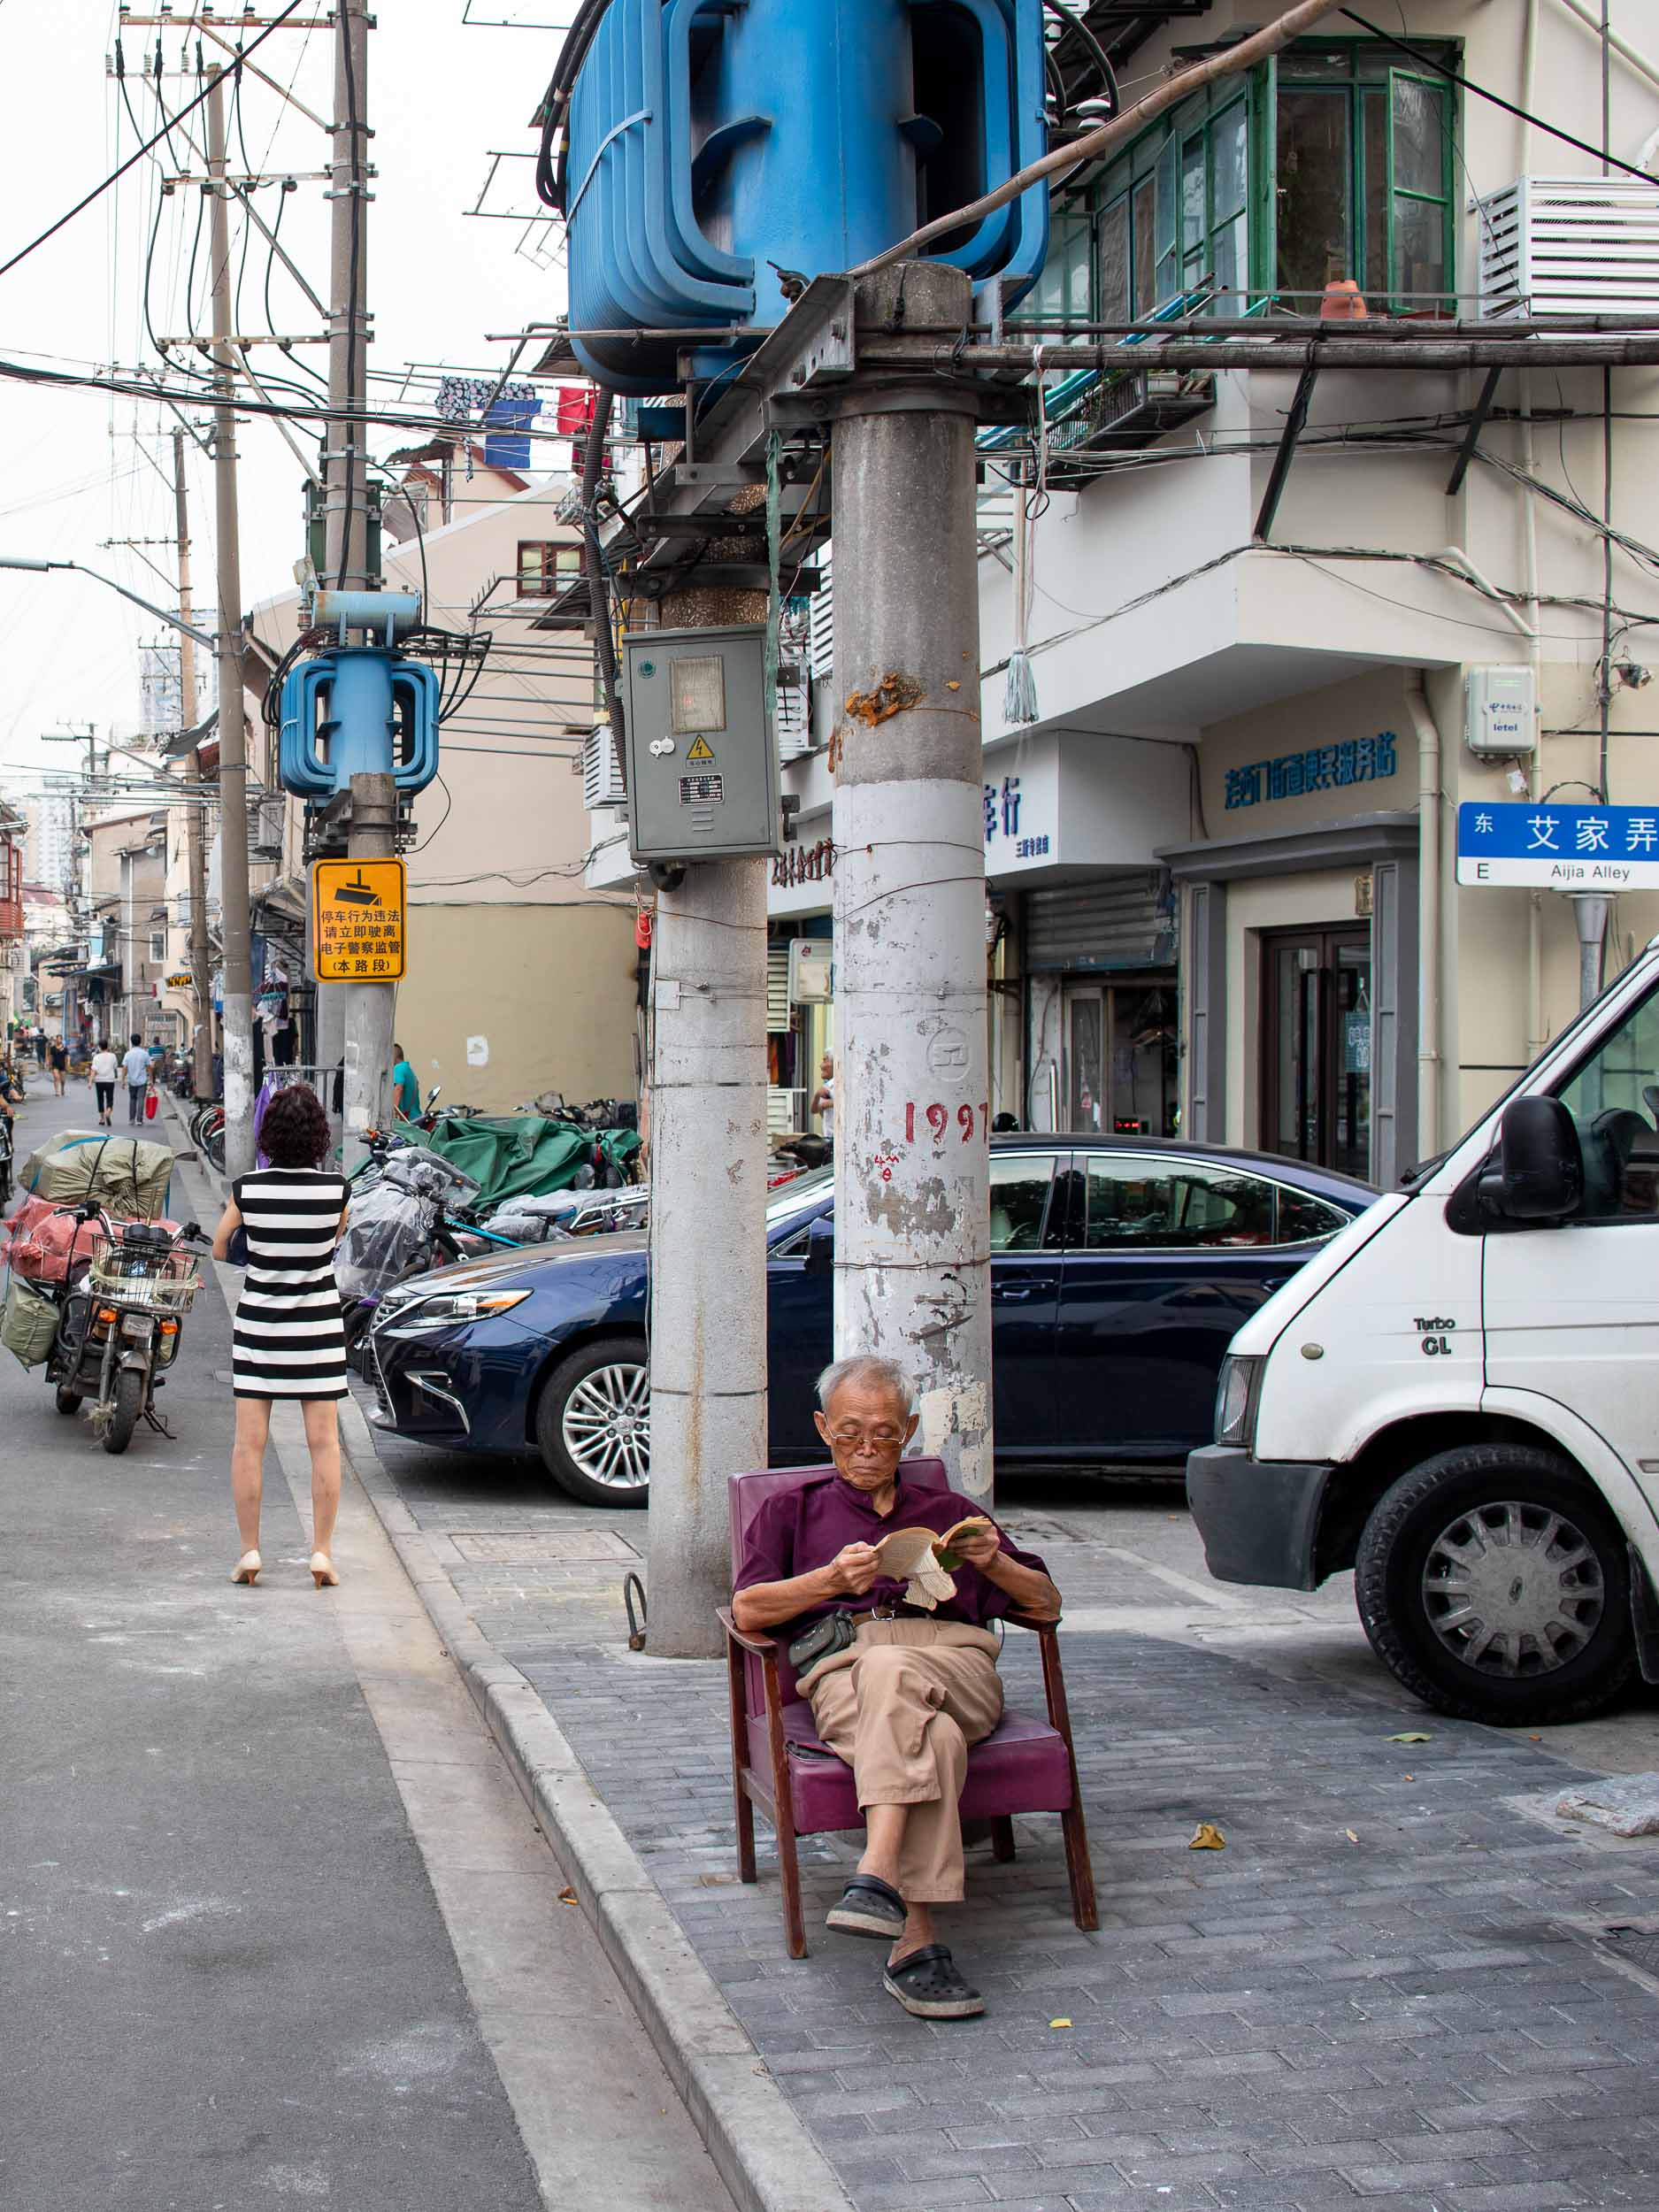 Old man reads a book on street in Shanghai, China.